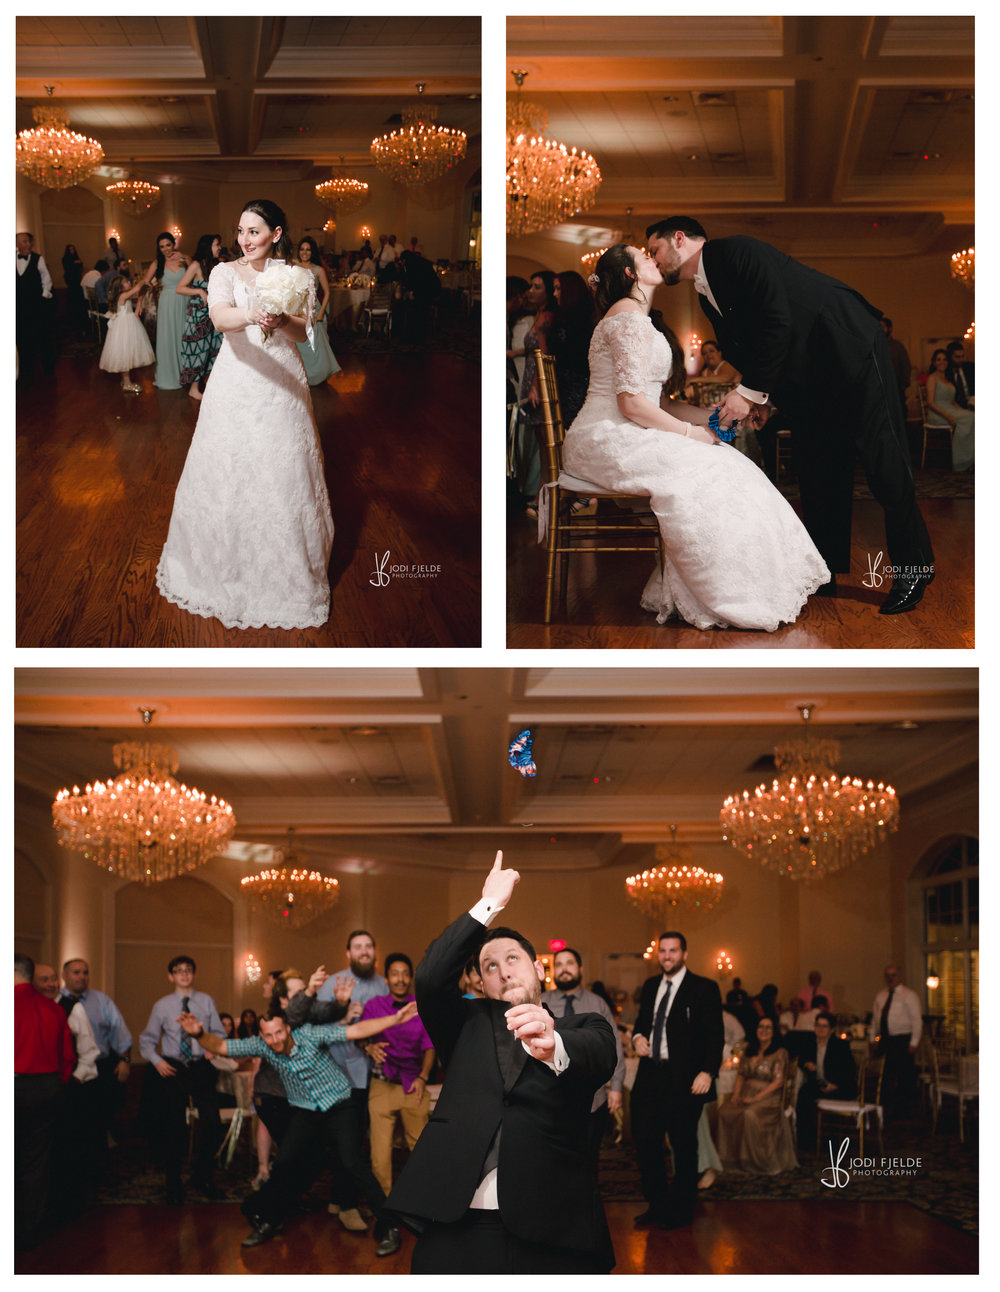 Deer_Creek_Country_Club_Wedding_Jodi_Fjelde_Photography_Andrea_Jason__27.jpg